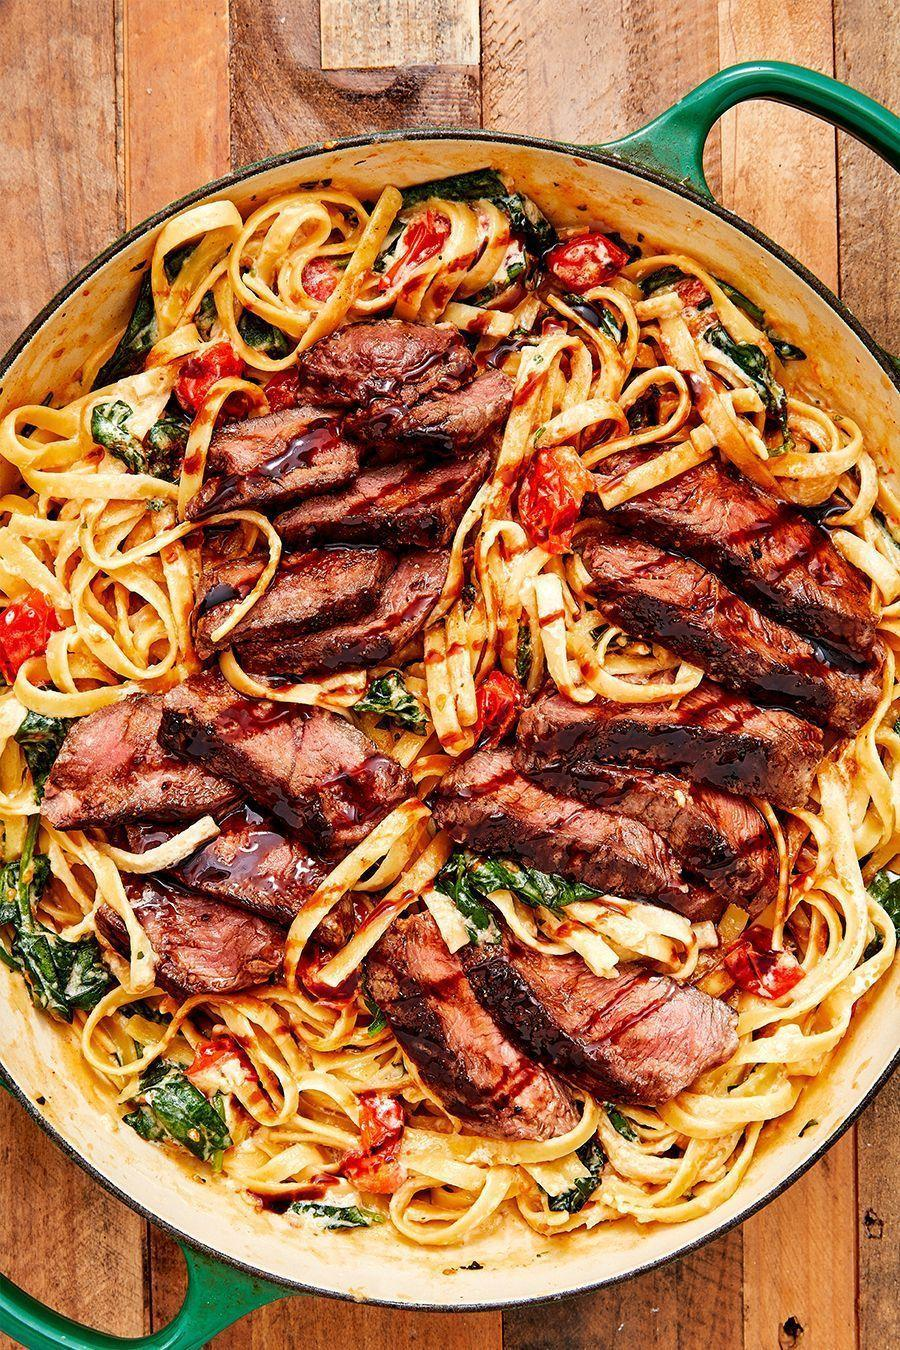 "<p>Whenever we crave <a href=""https://www.delish.com/uk/food-news/a28961080/how-to-cook-steak/"" rel=""nofollow noopener"" target=""_blank"" data-ylk=""slk:steak"" class=""link rapid-noclick-resp"">steak</a> this dish is always what we want to make. It comes together quickly and is so full of flavour. It makes us forget chicken ever existed.</p><p>Get the <a href=""https://www.delish.com/uk/cooking/recipes/a30311517/creamy-steak-fettuccine-recipe/"" rel=""nofollow noopener"" target=""_blank"" data-ylk=""slk:Creamy Steak Fettuccine"" class=""link rapid-noclick-resp"">Creamy Steak Fettuccine</a> recipe.</p>"